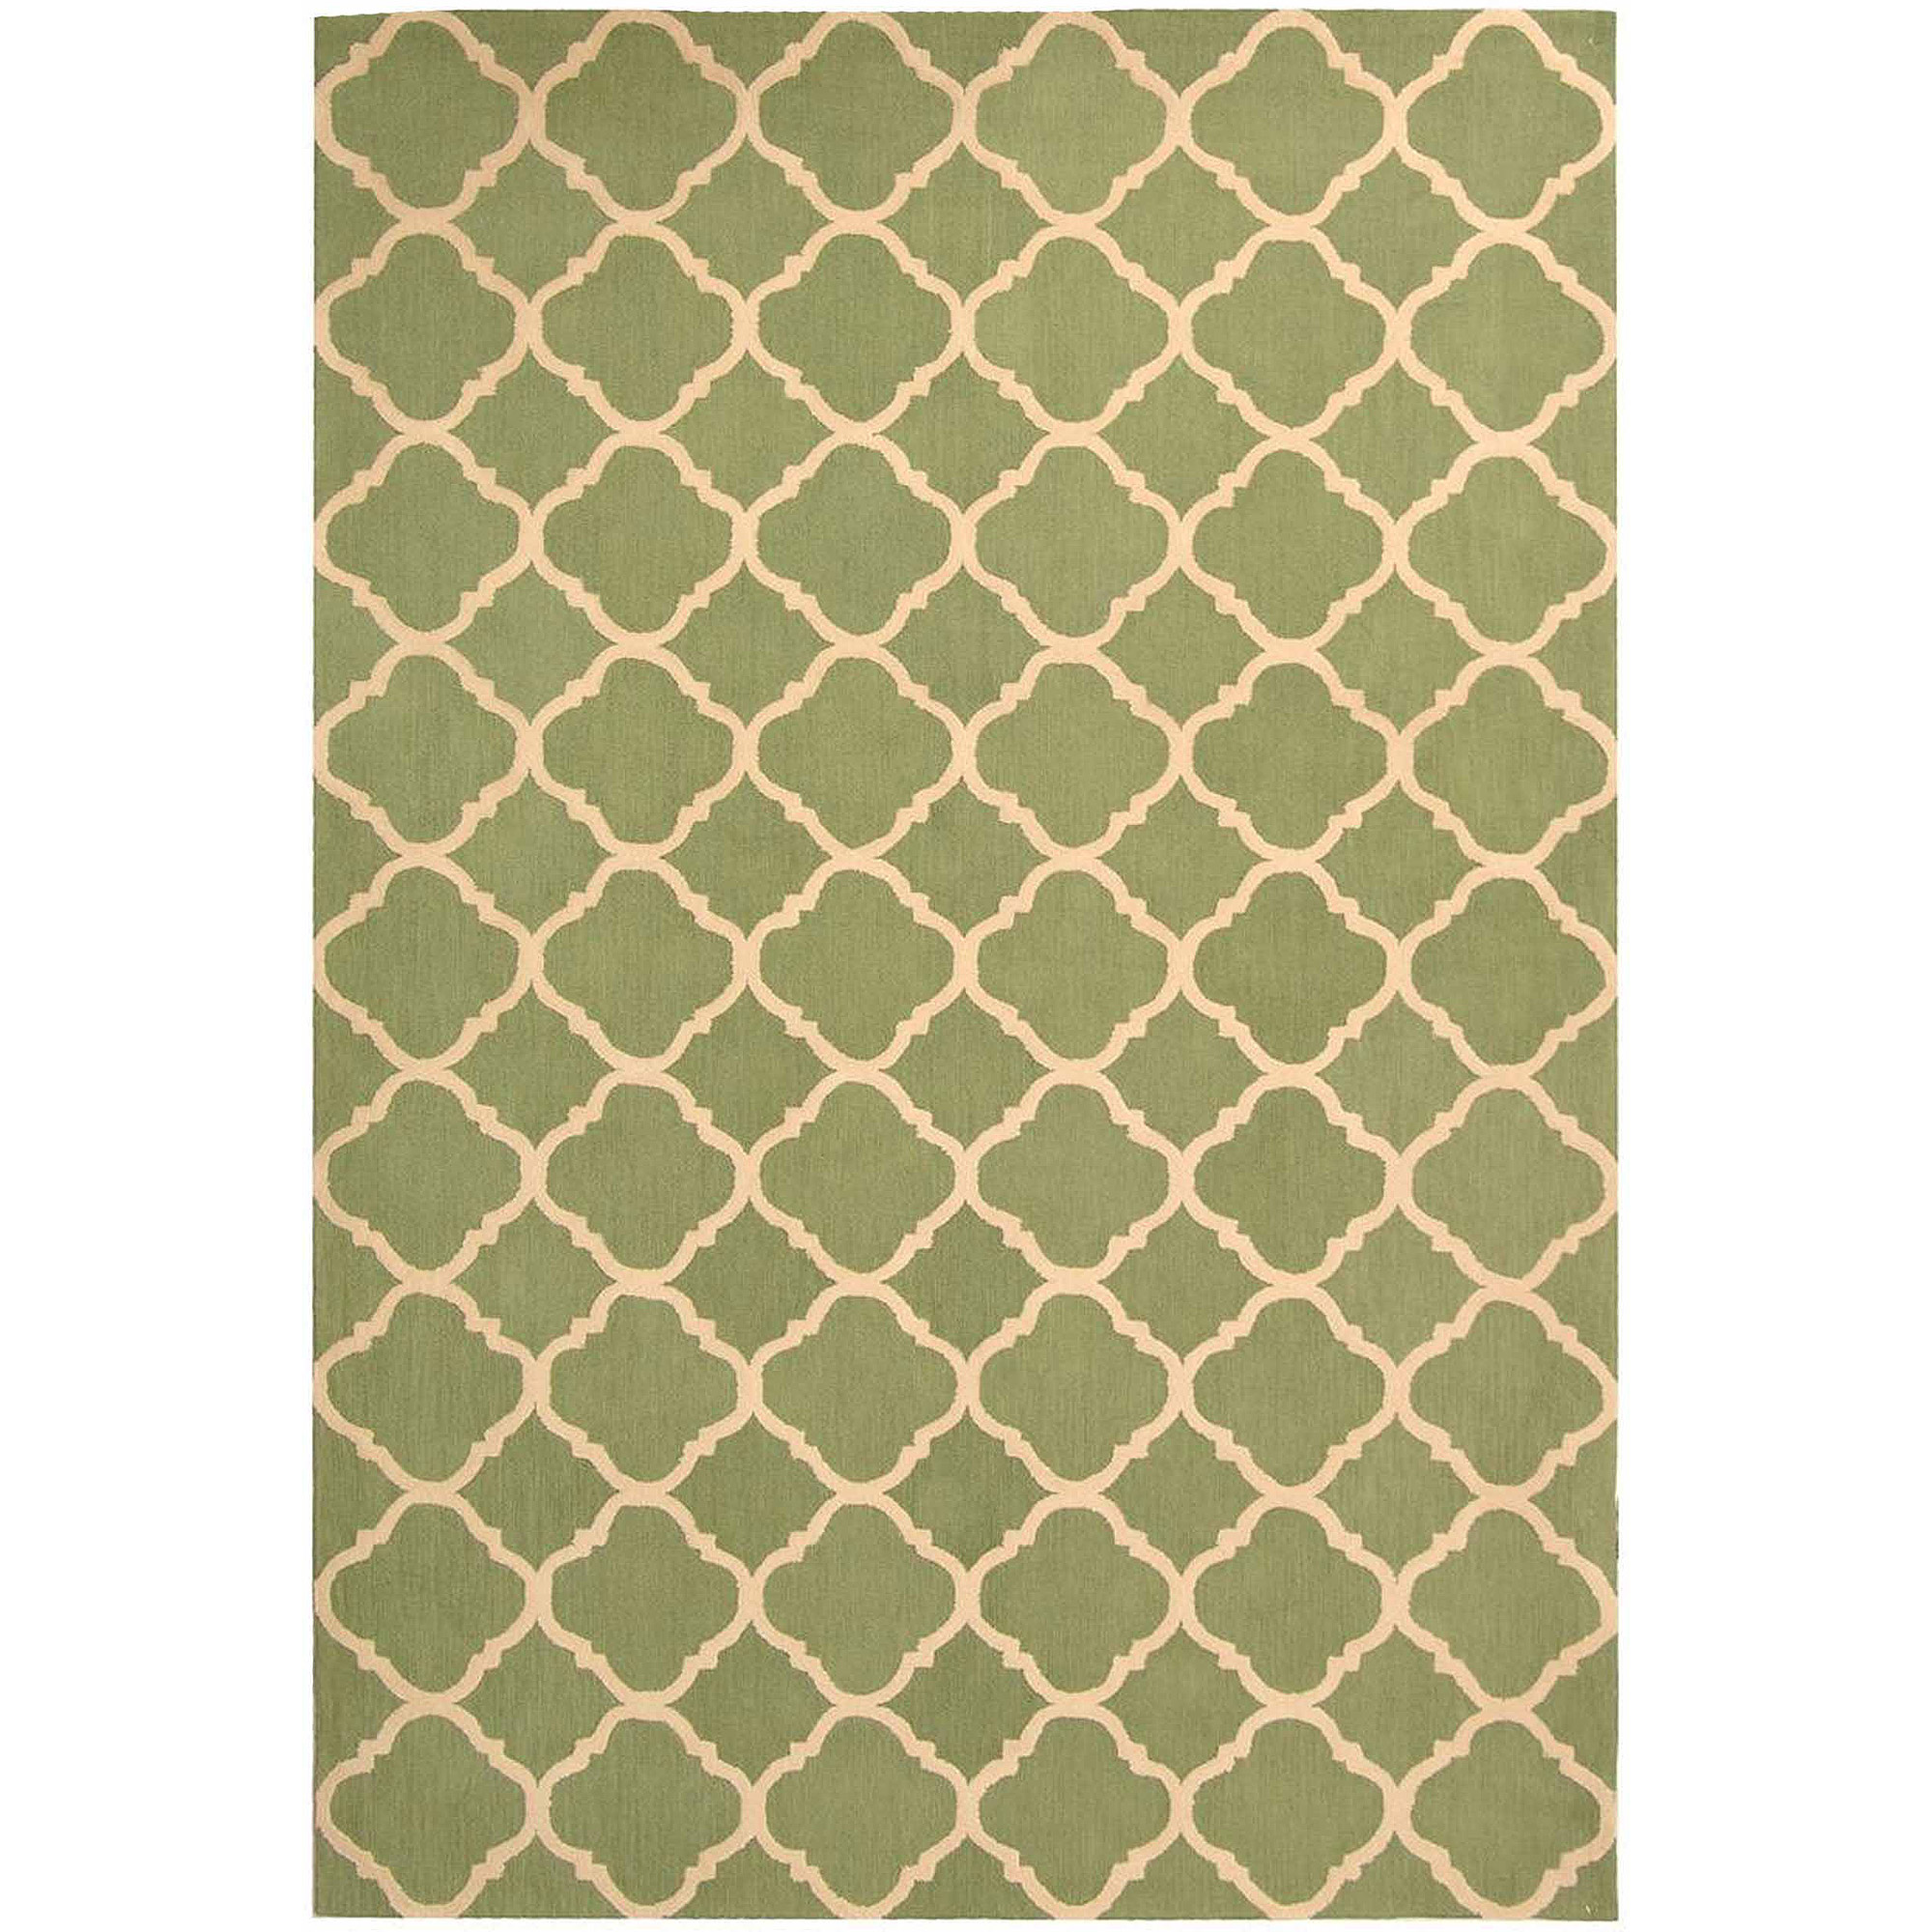 Safavieh Newport Joselyn Hand-Hooked Cotton Area Rug, Green/Ivory